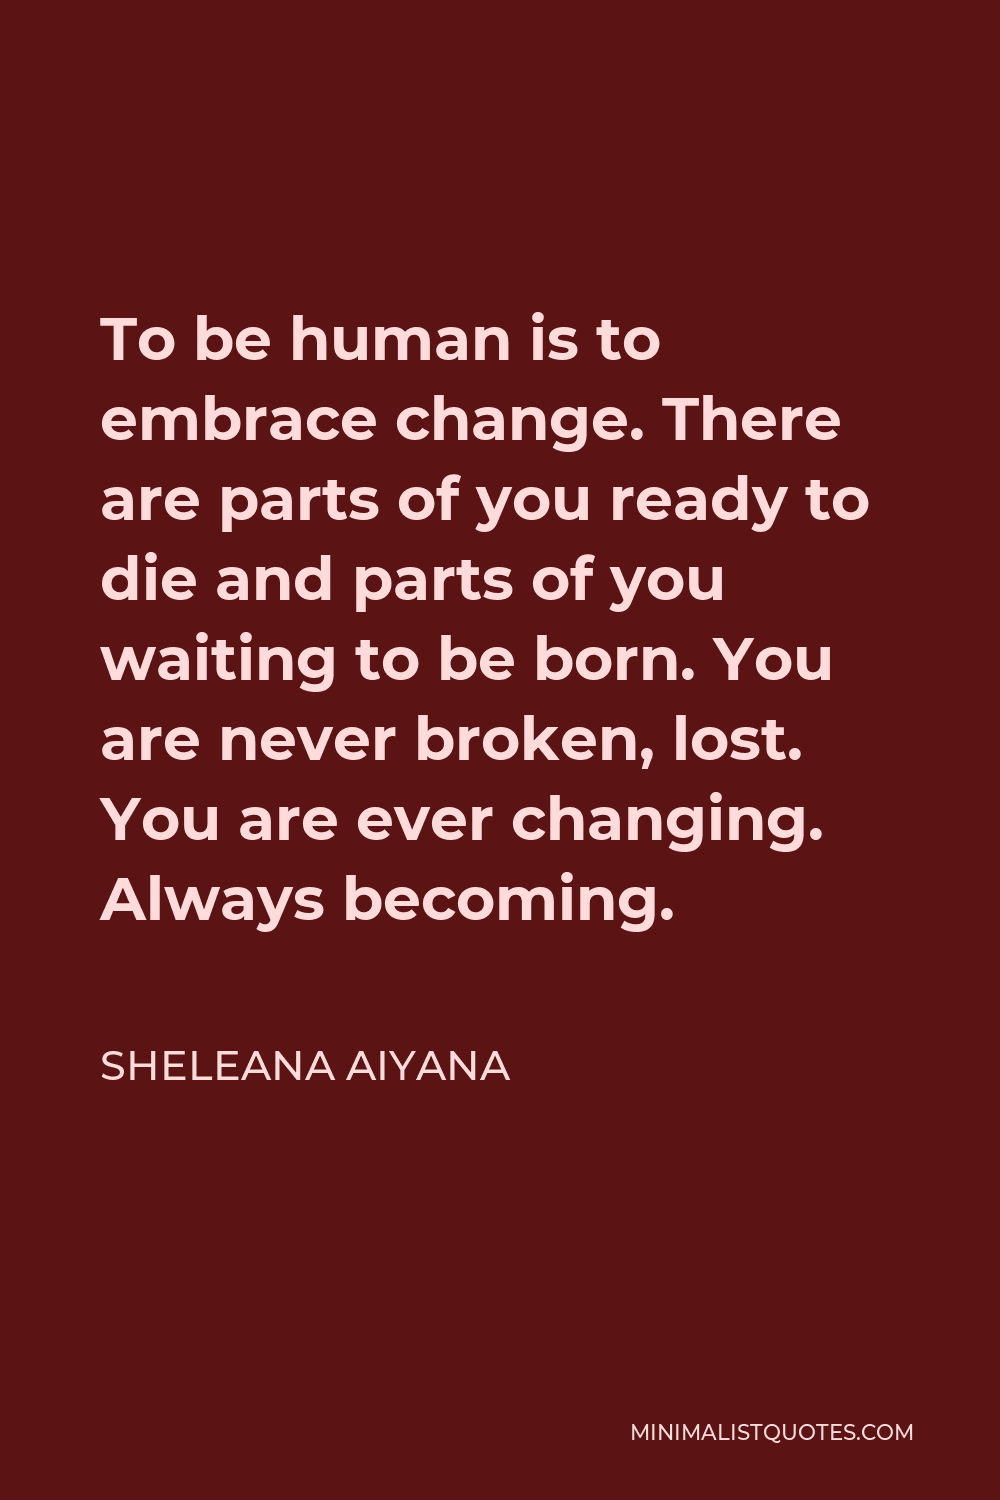 Sheleana Aiyana Quote - To be human is to embrace change. There are parts of you ready to die and parts of you waiting to be born. You are never broken, lost. You are ever changing. Always becoming.